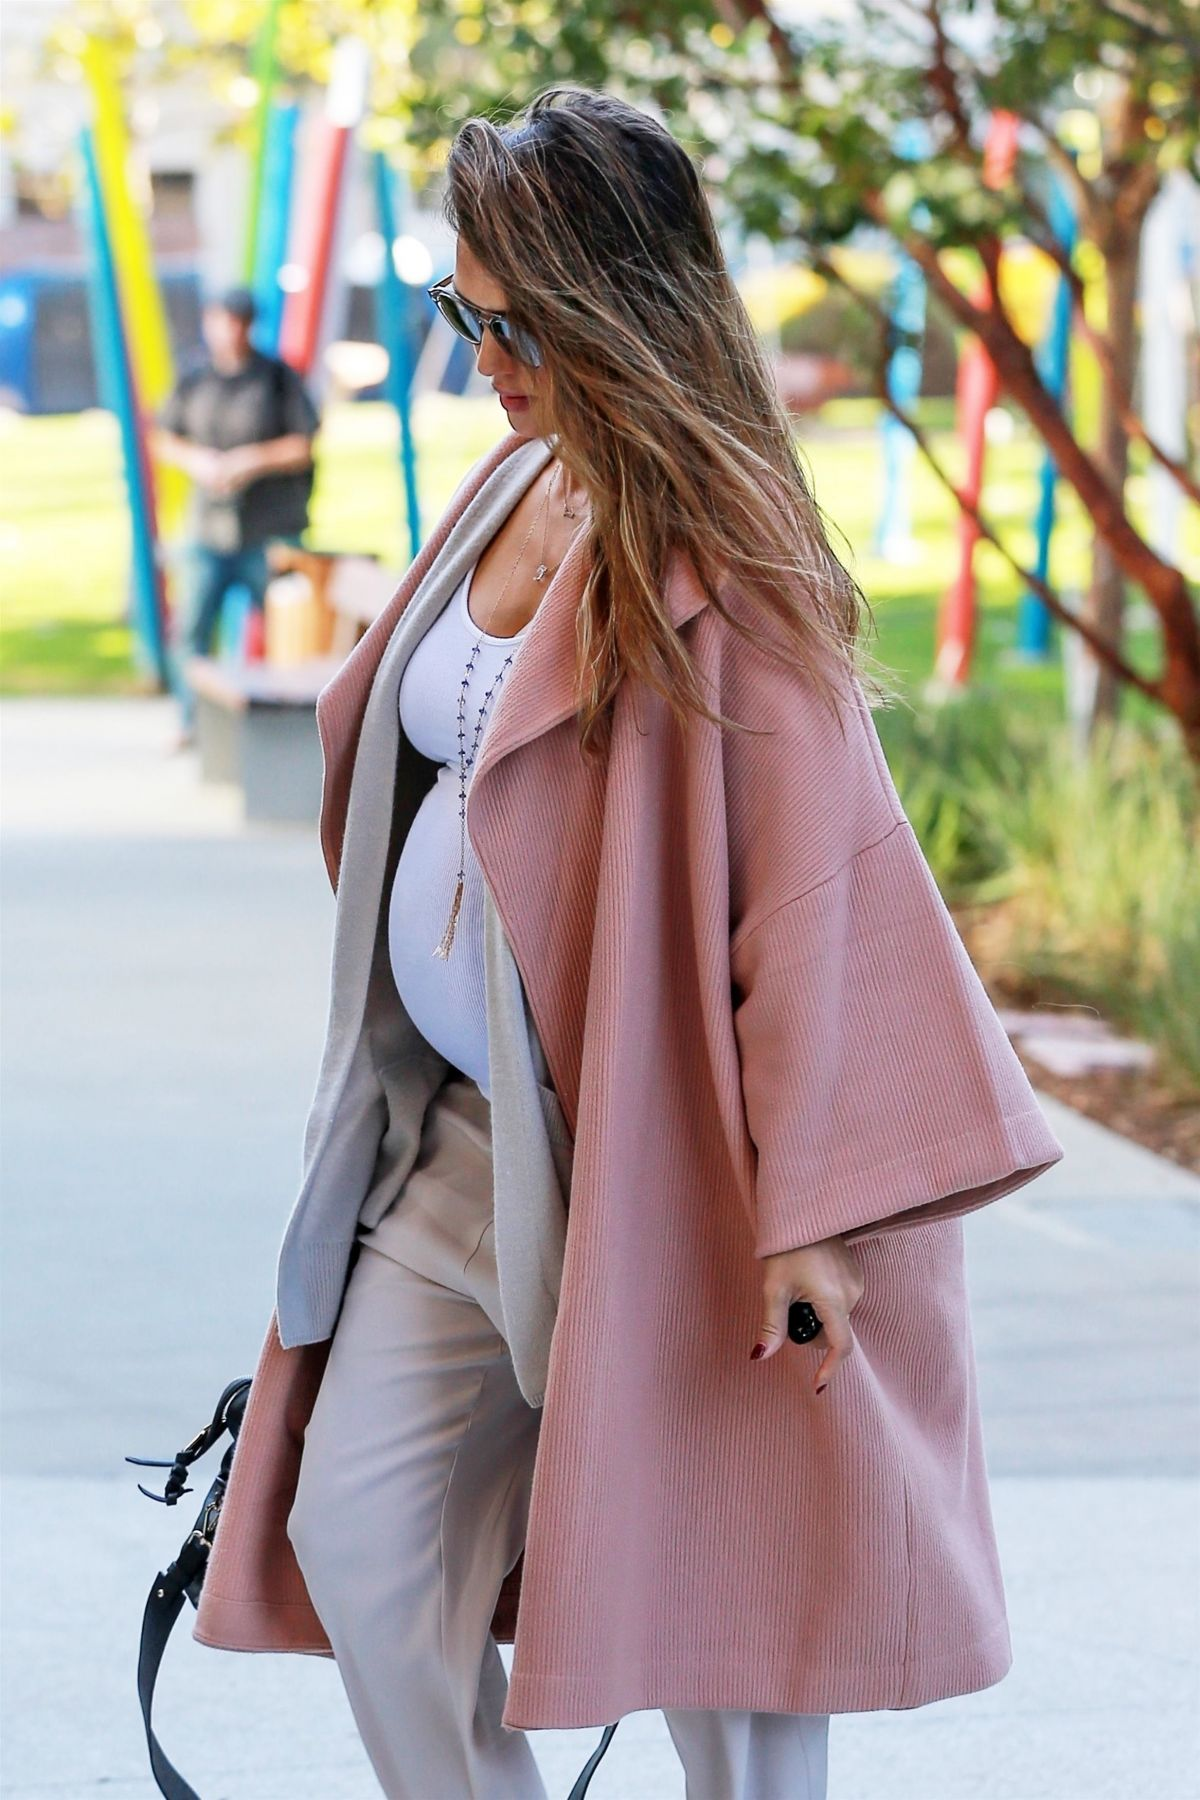 http://www.hawtcelebs.com/wp-content/uploads/2017/11/pregnant-jessica-alba-out-and-about-in-los-angeles-11-07-2017-1.jpg